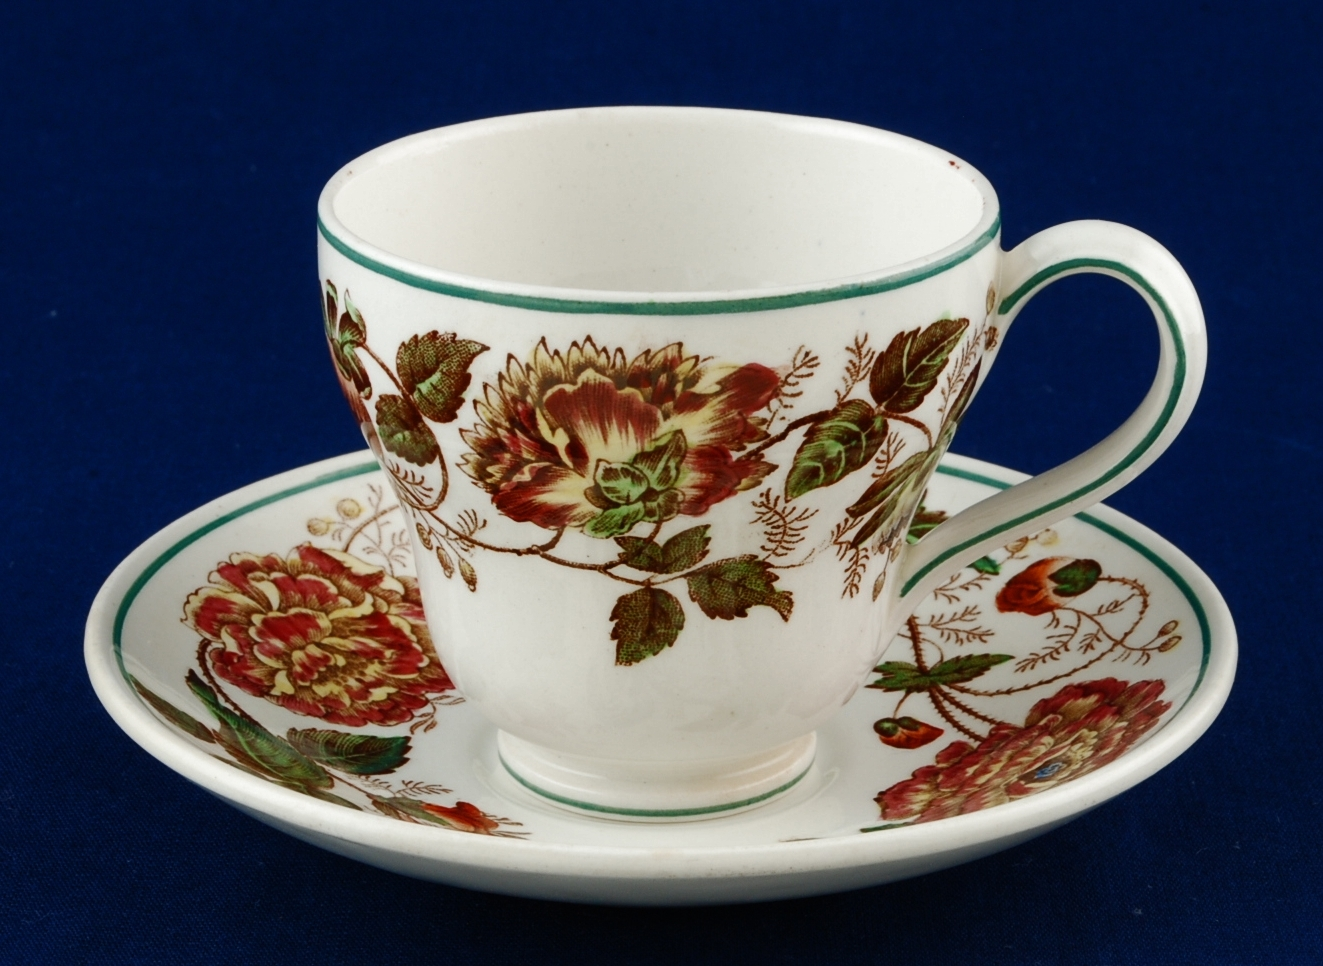 Primary image for Wedgwood Surrey Rust Demitasse Cup & Saucer Etruria TL421